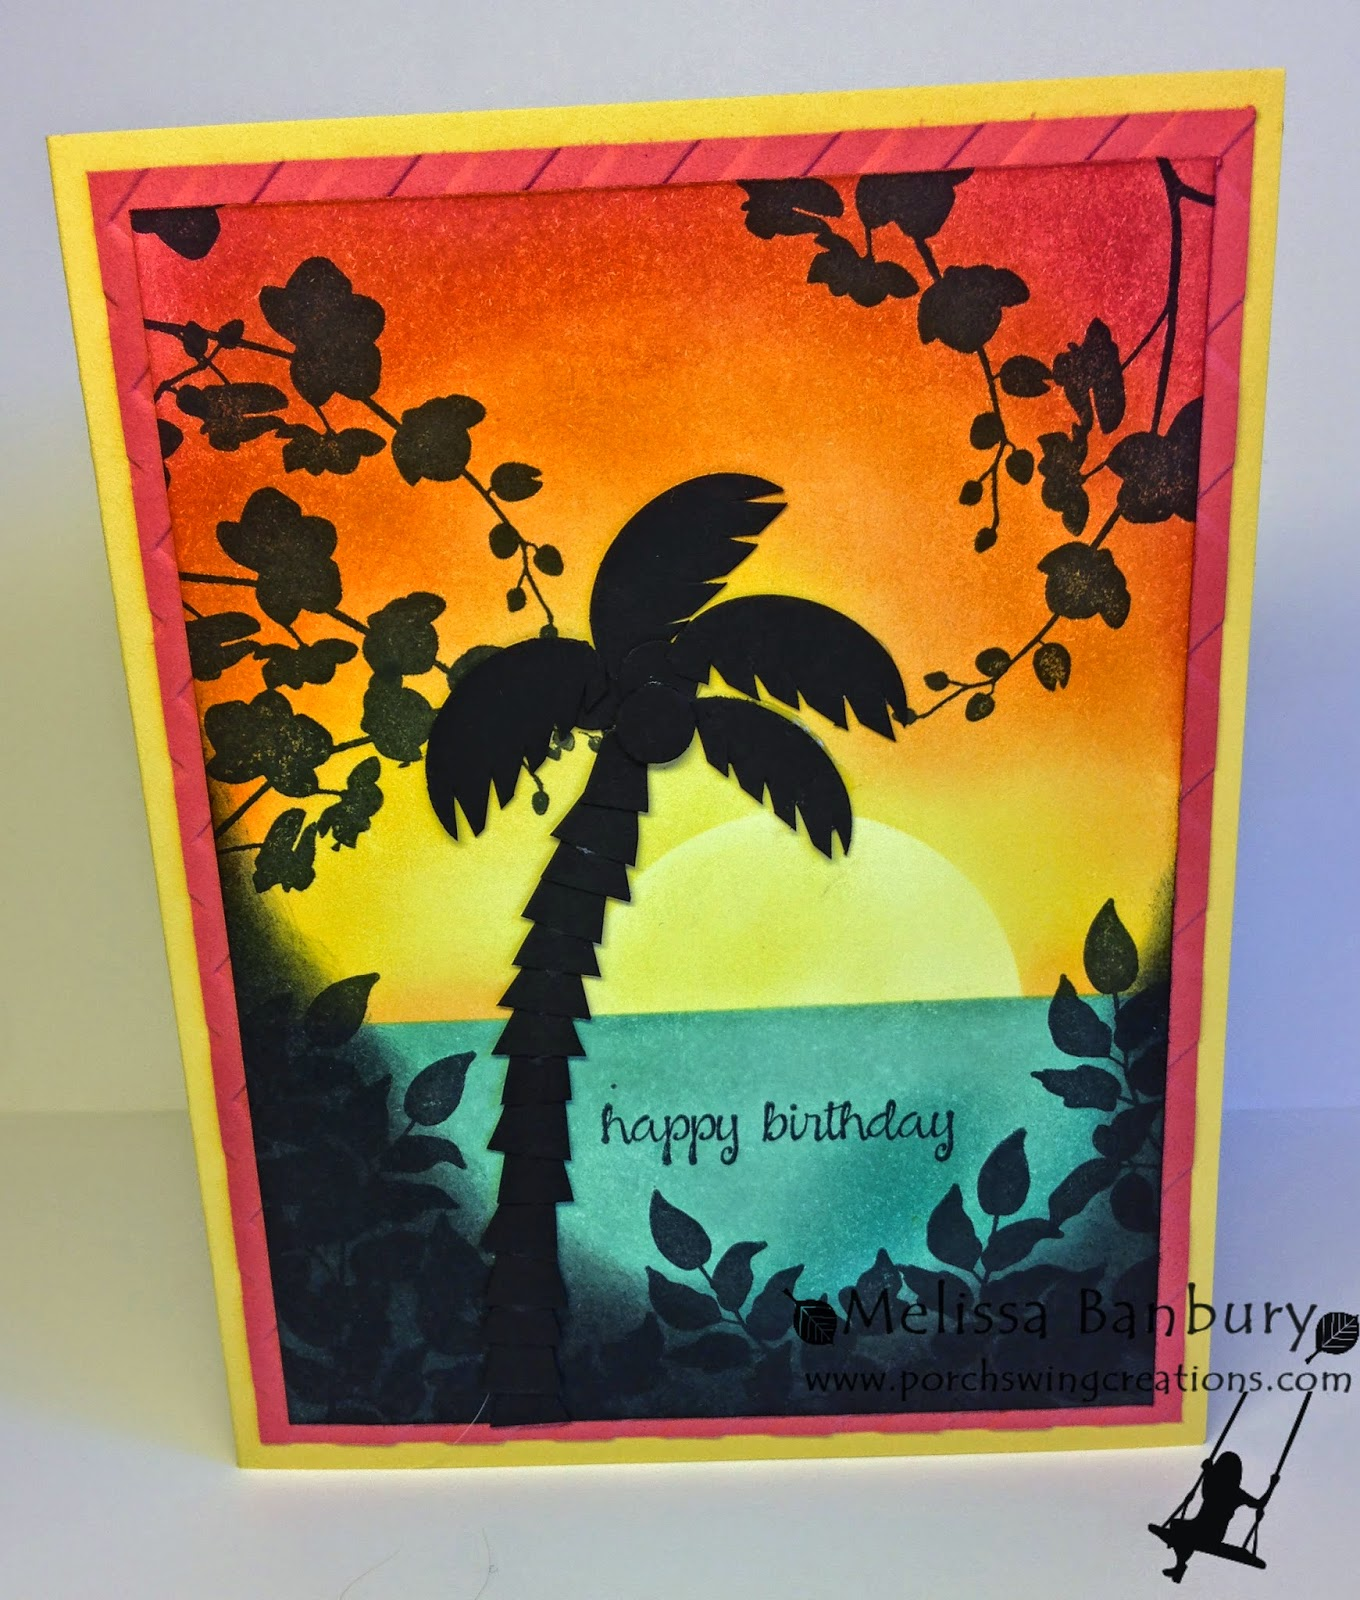 Porch Swing Creations: Tropical Birthday Wishes